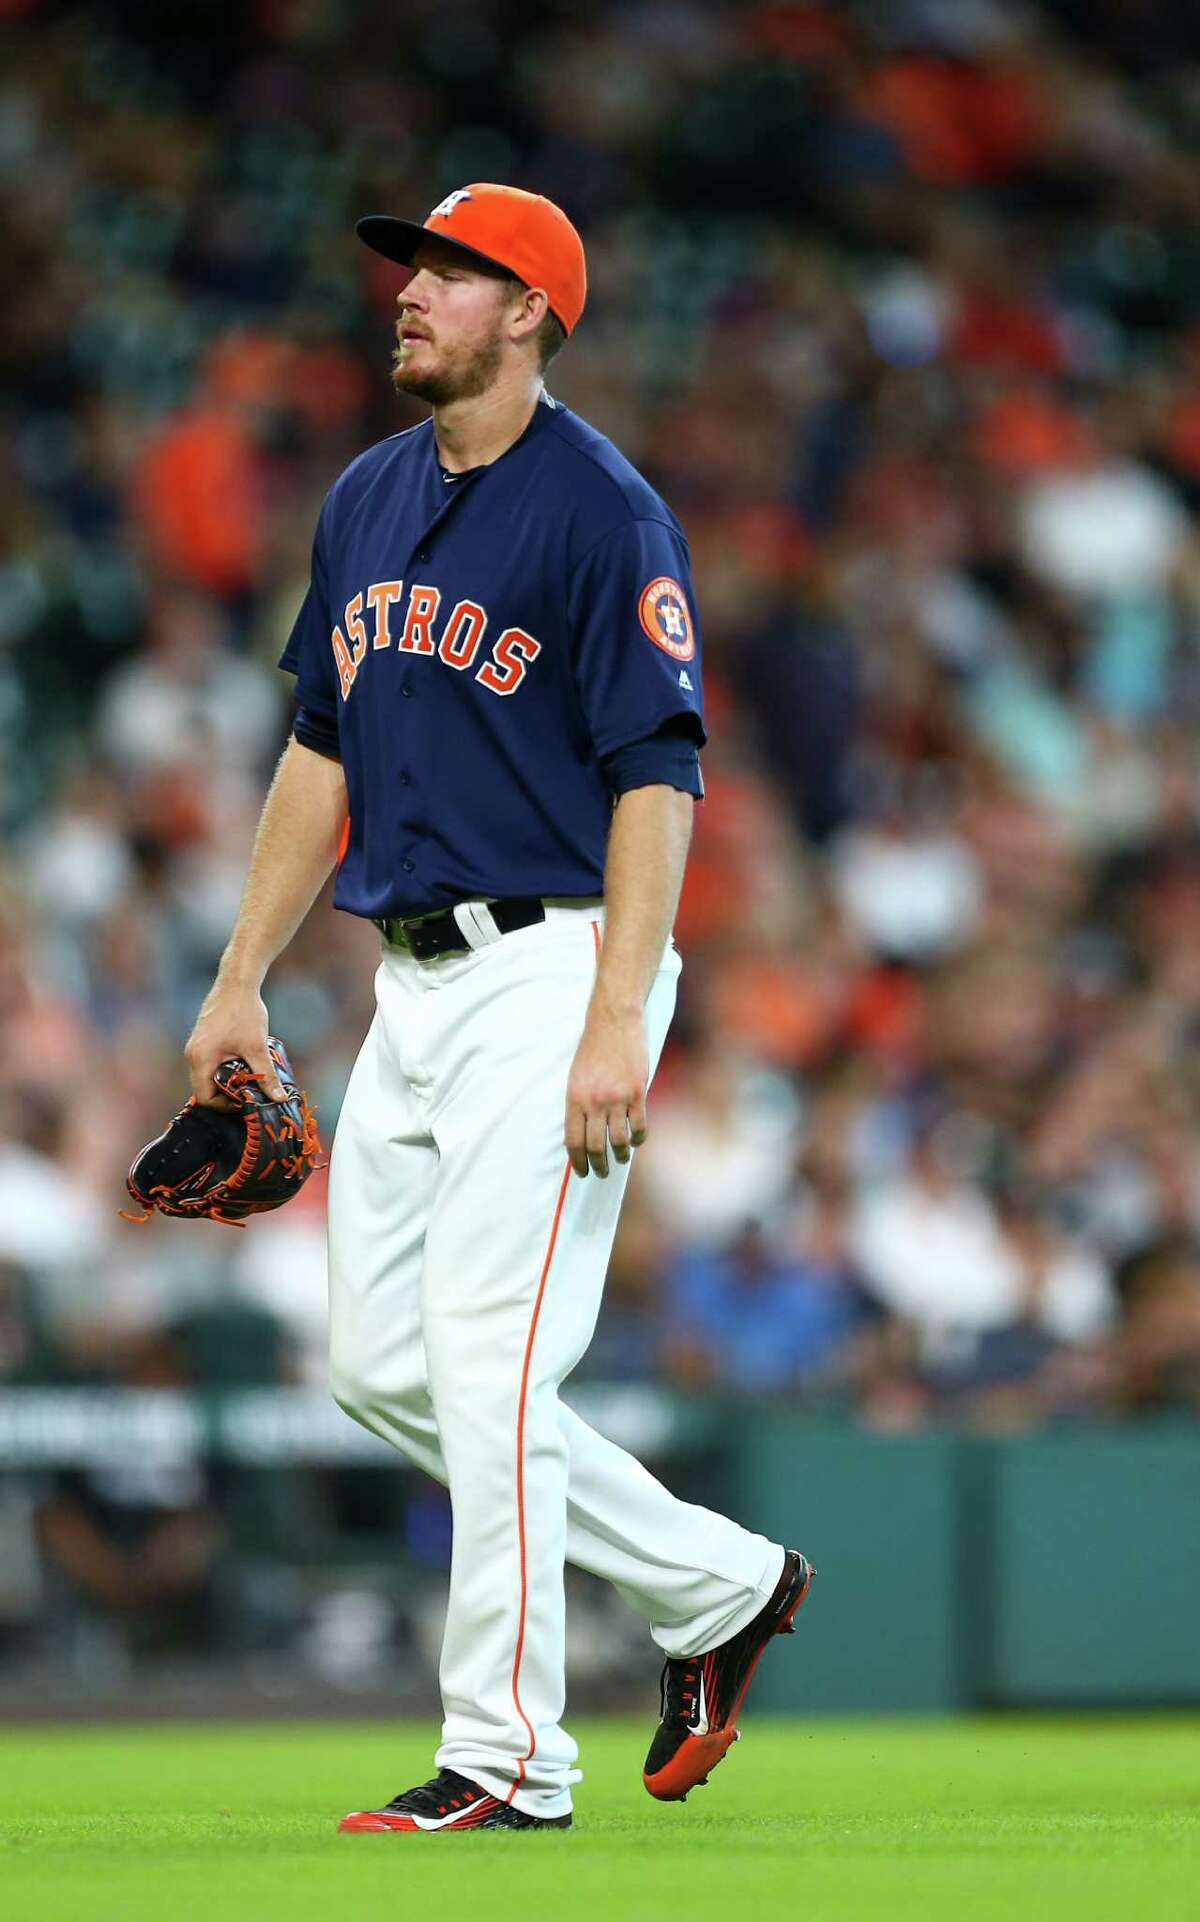 Houston Astros relief pitcher Chris Devenski (47) walks back to the dugout after being relieved by relief pitcher Luke Gregerson (44) during the eighth inning of an MLB game at Minute Maid Park, Sunday, July 3, 2016, in Houston.